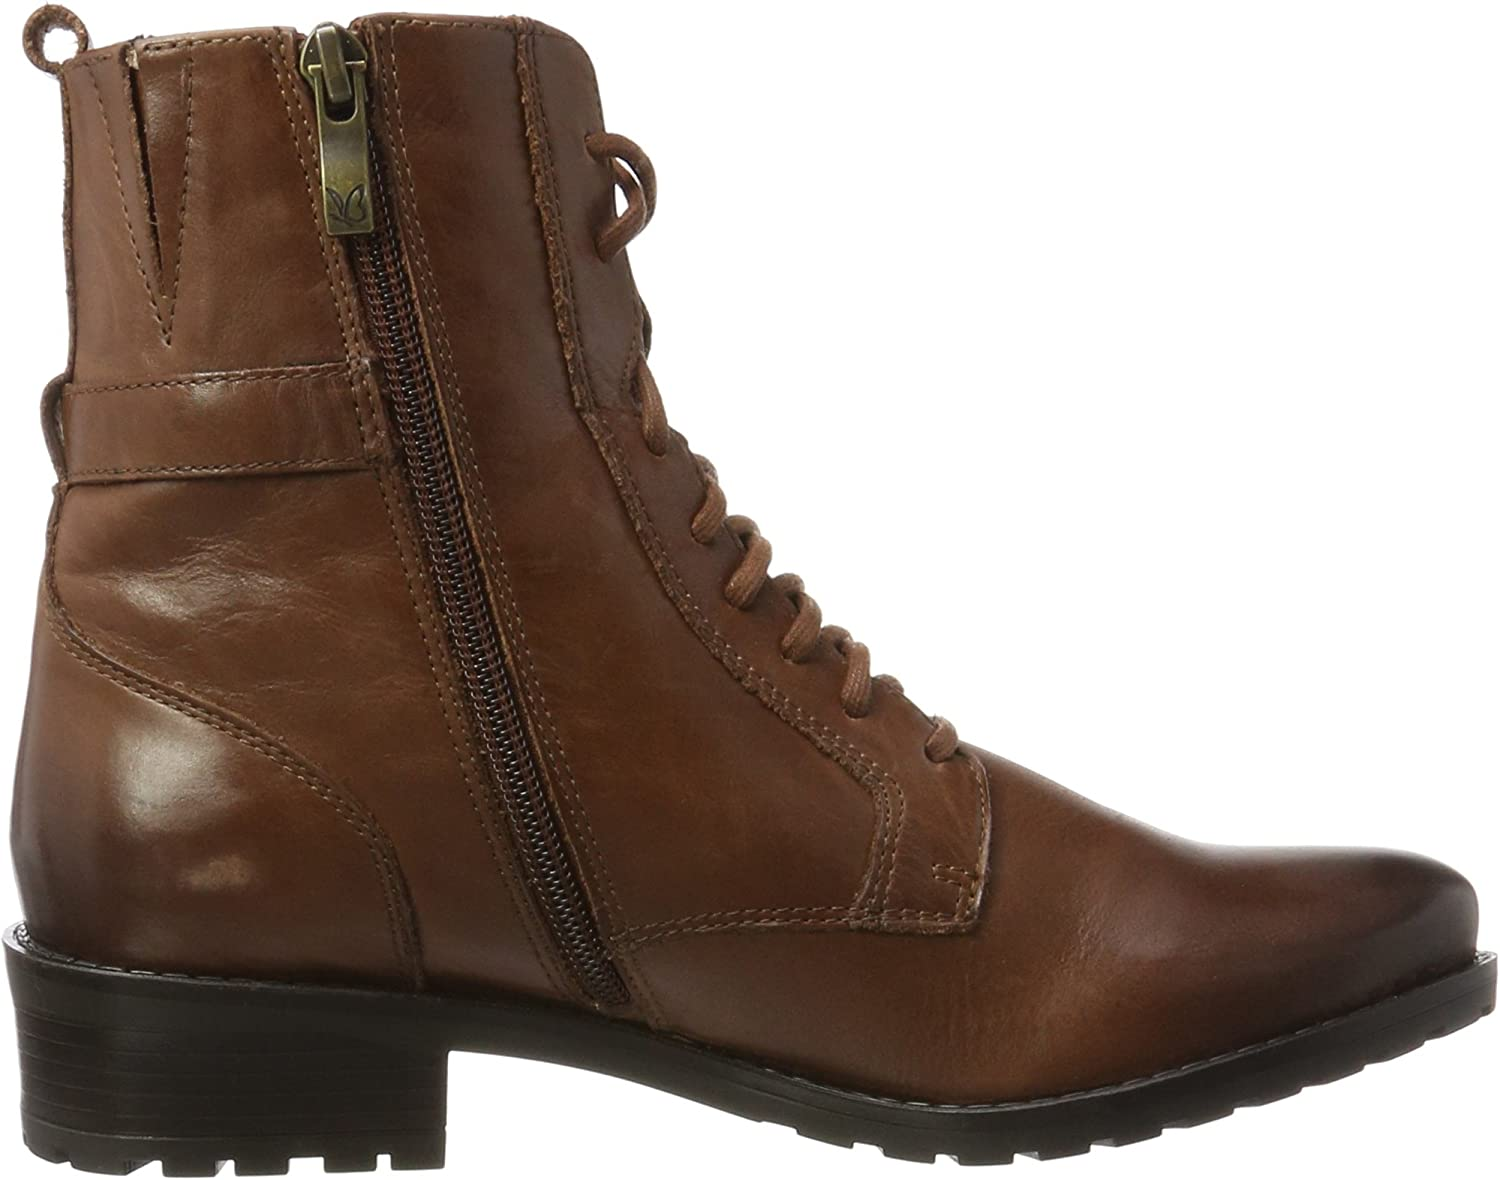 Caprice Brandy Antic Womens Ankle Boots